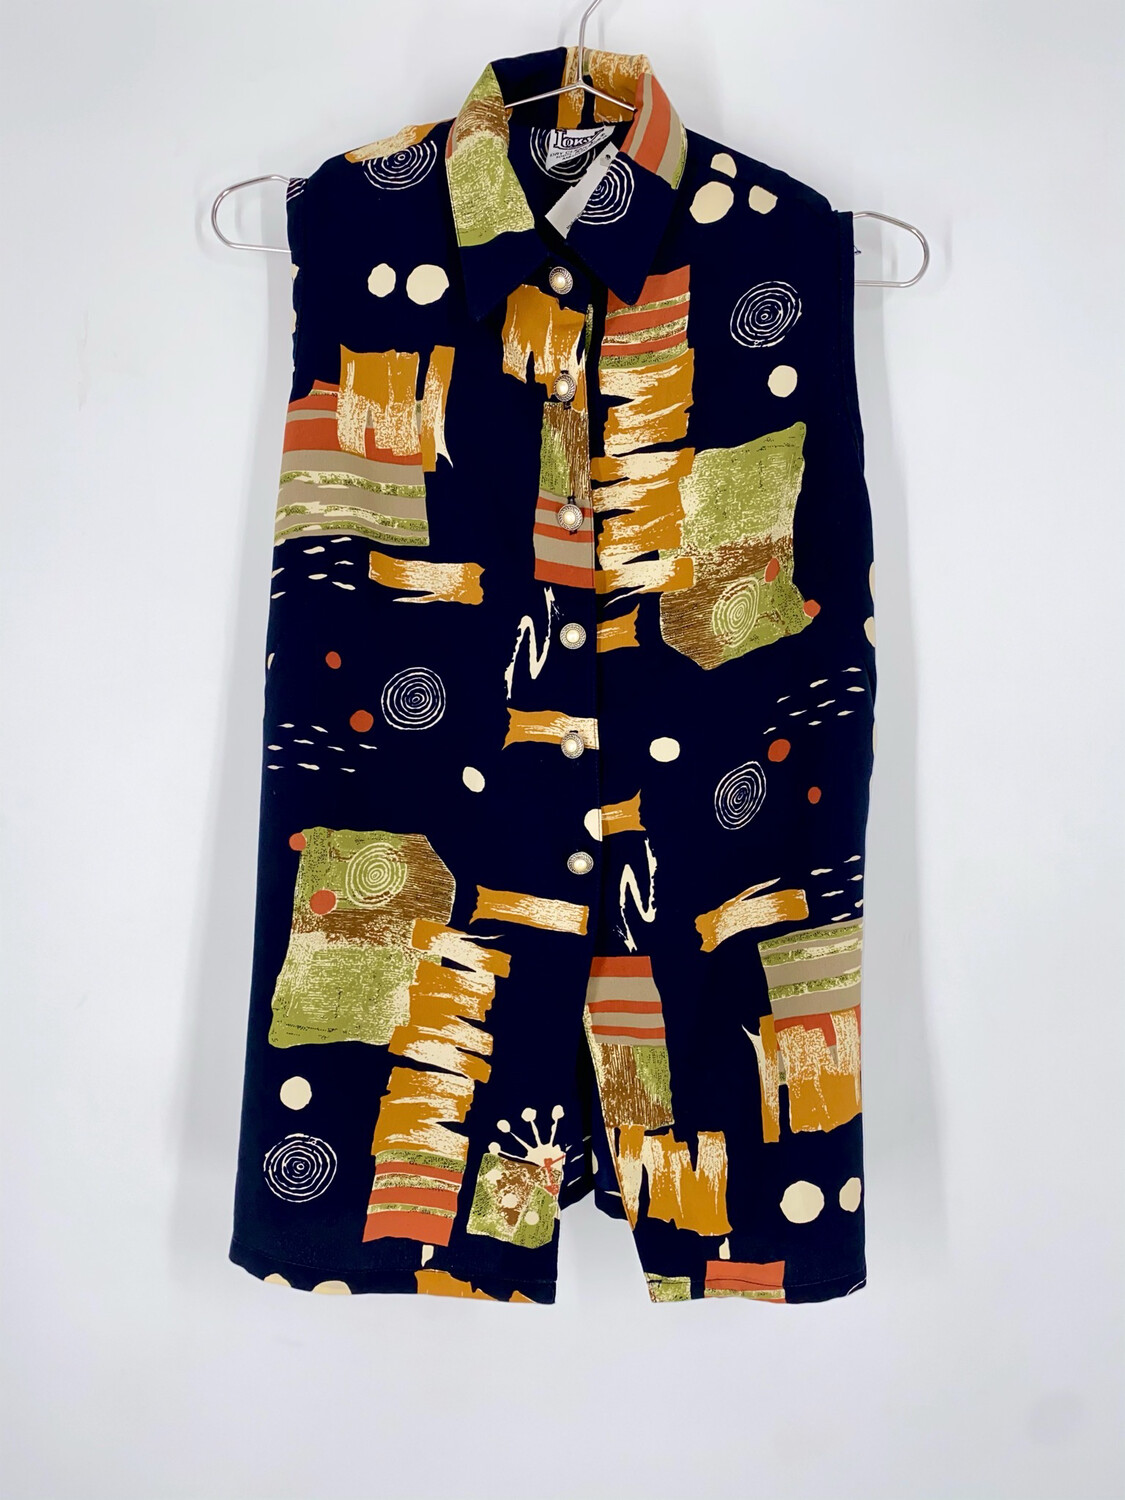 Loky Sleeveless Button Up Top Size M